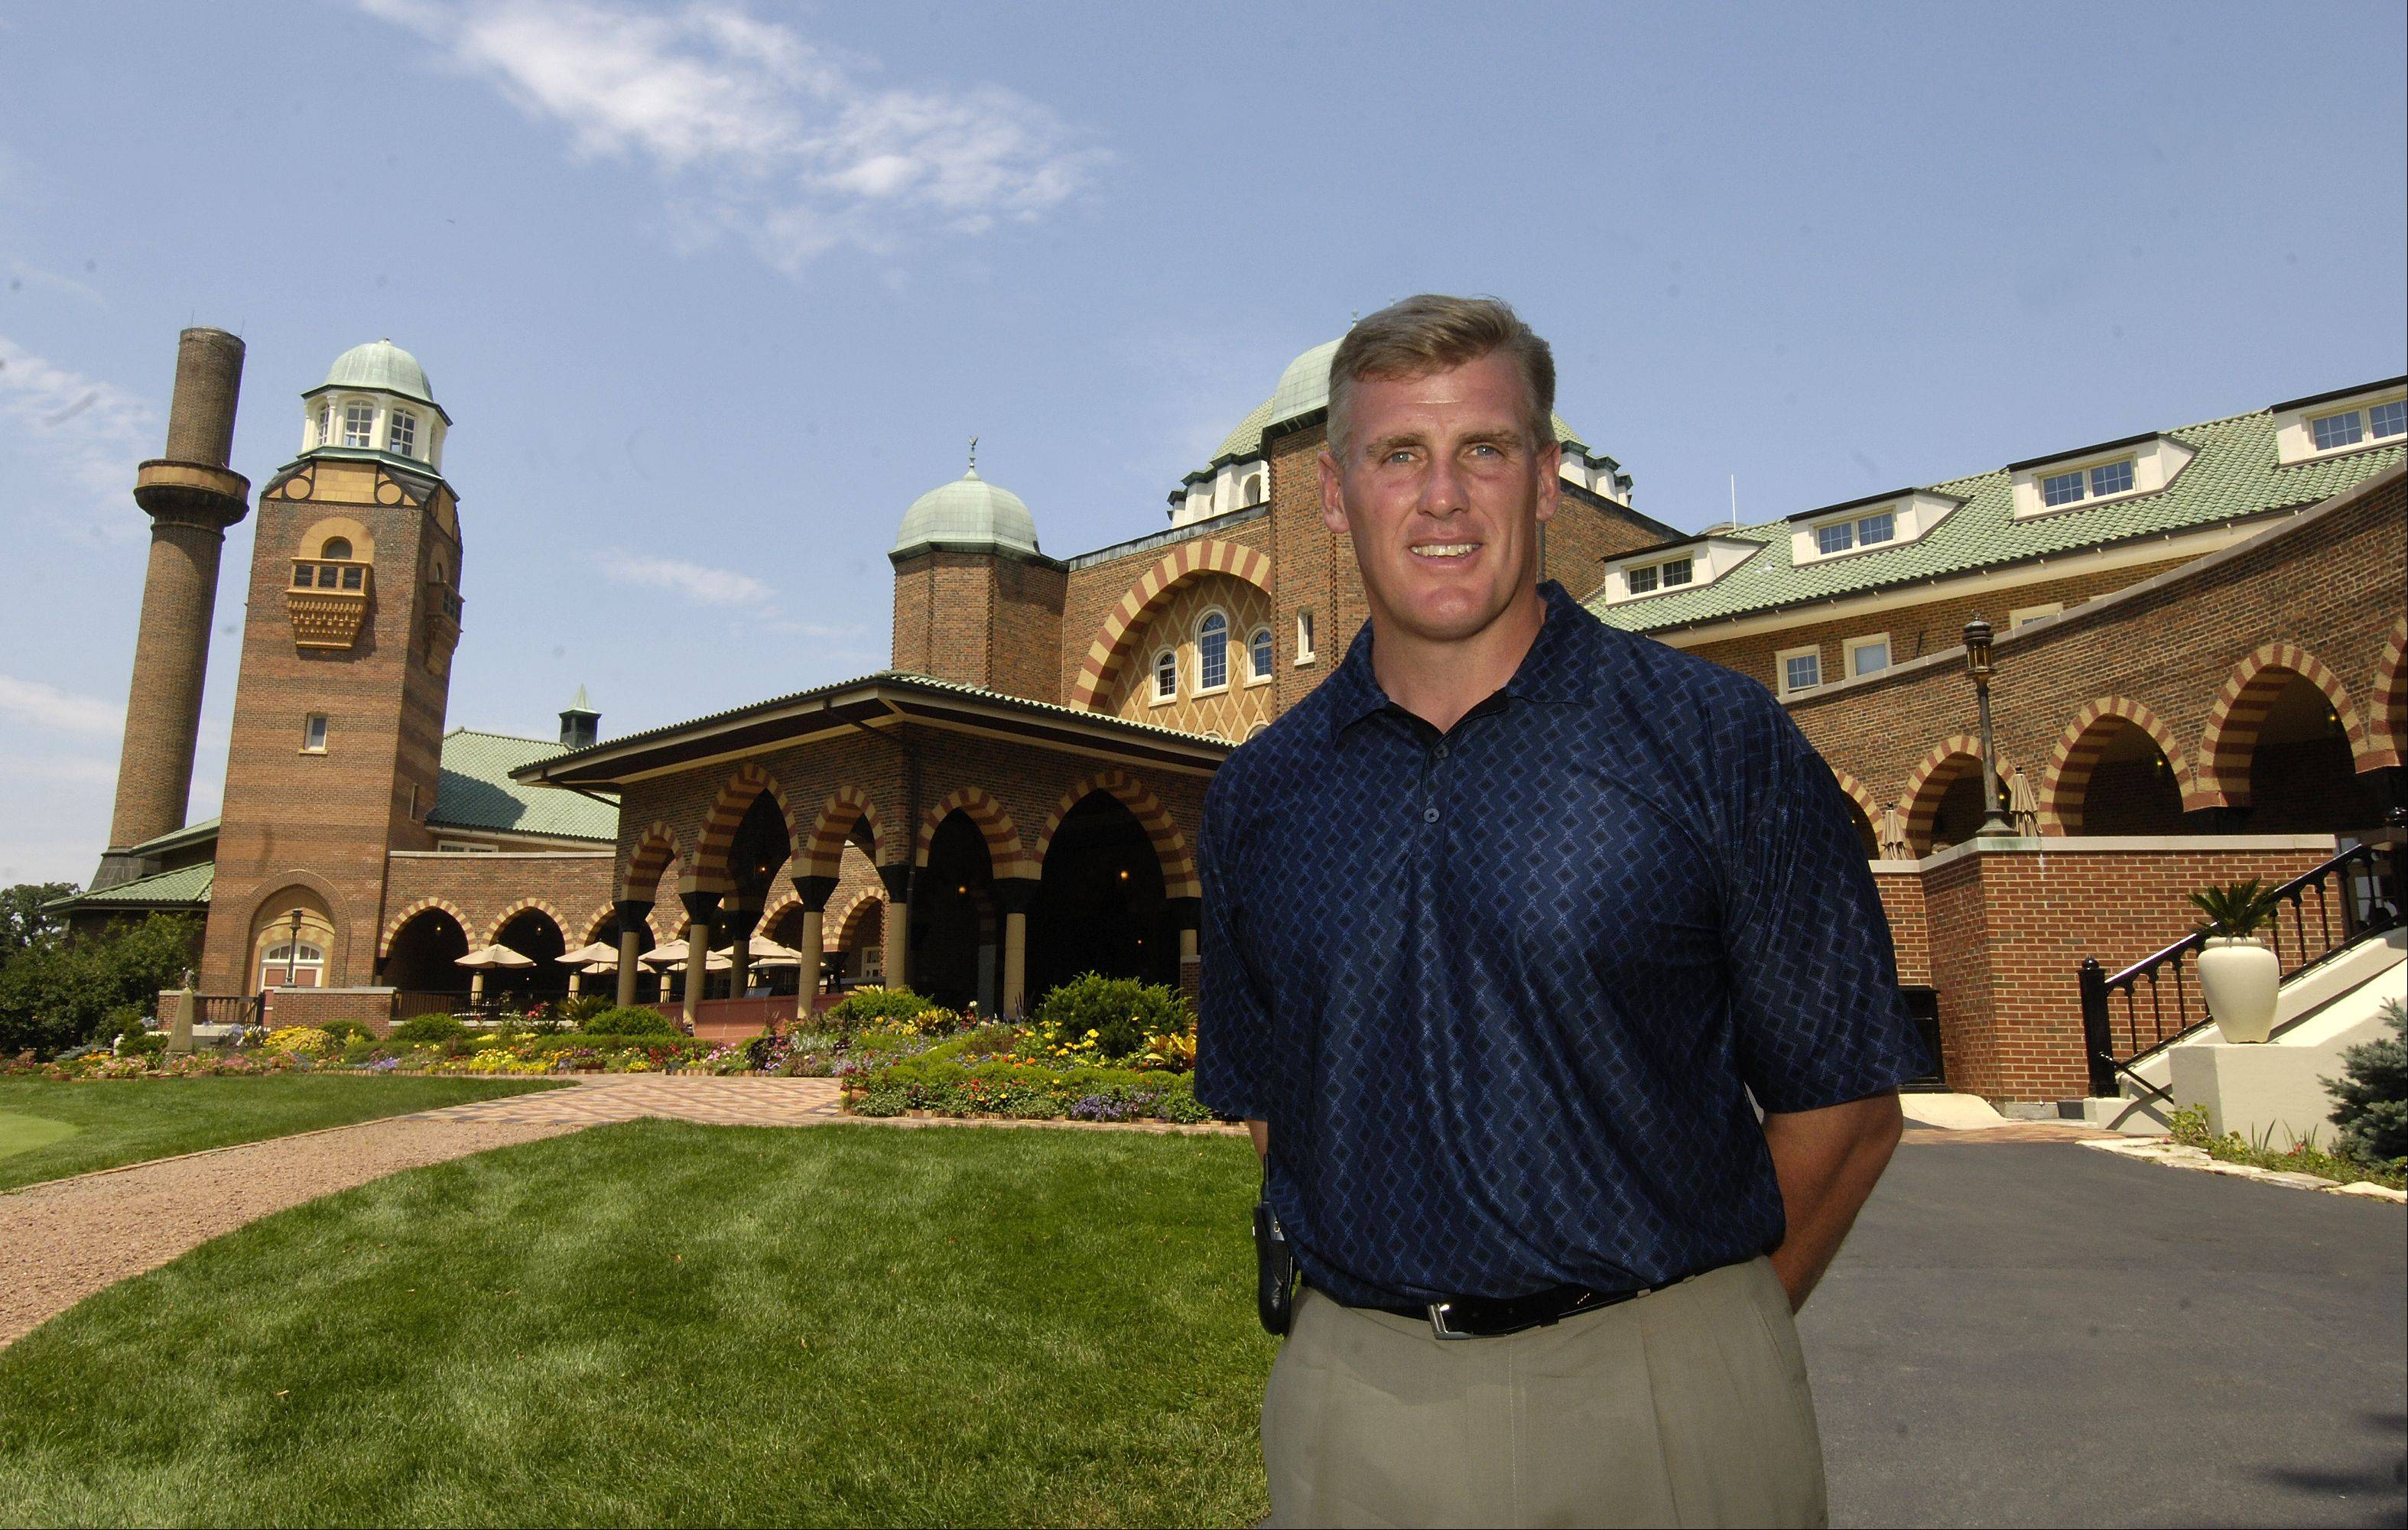 Medinah's Director of Golf, Mike Scully, likes how the course is set up for the Ryder Cup, with some key changes since it hosted its last major event.